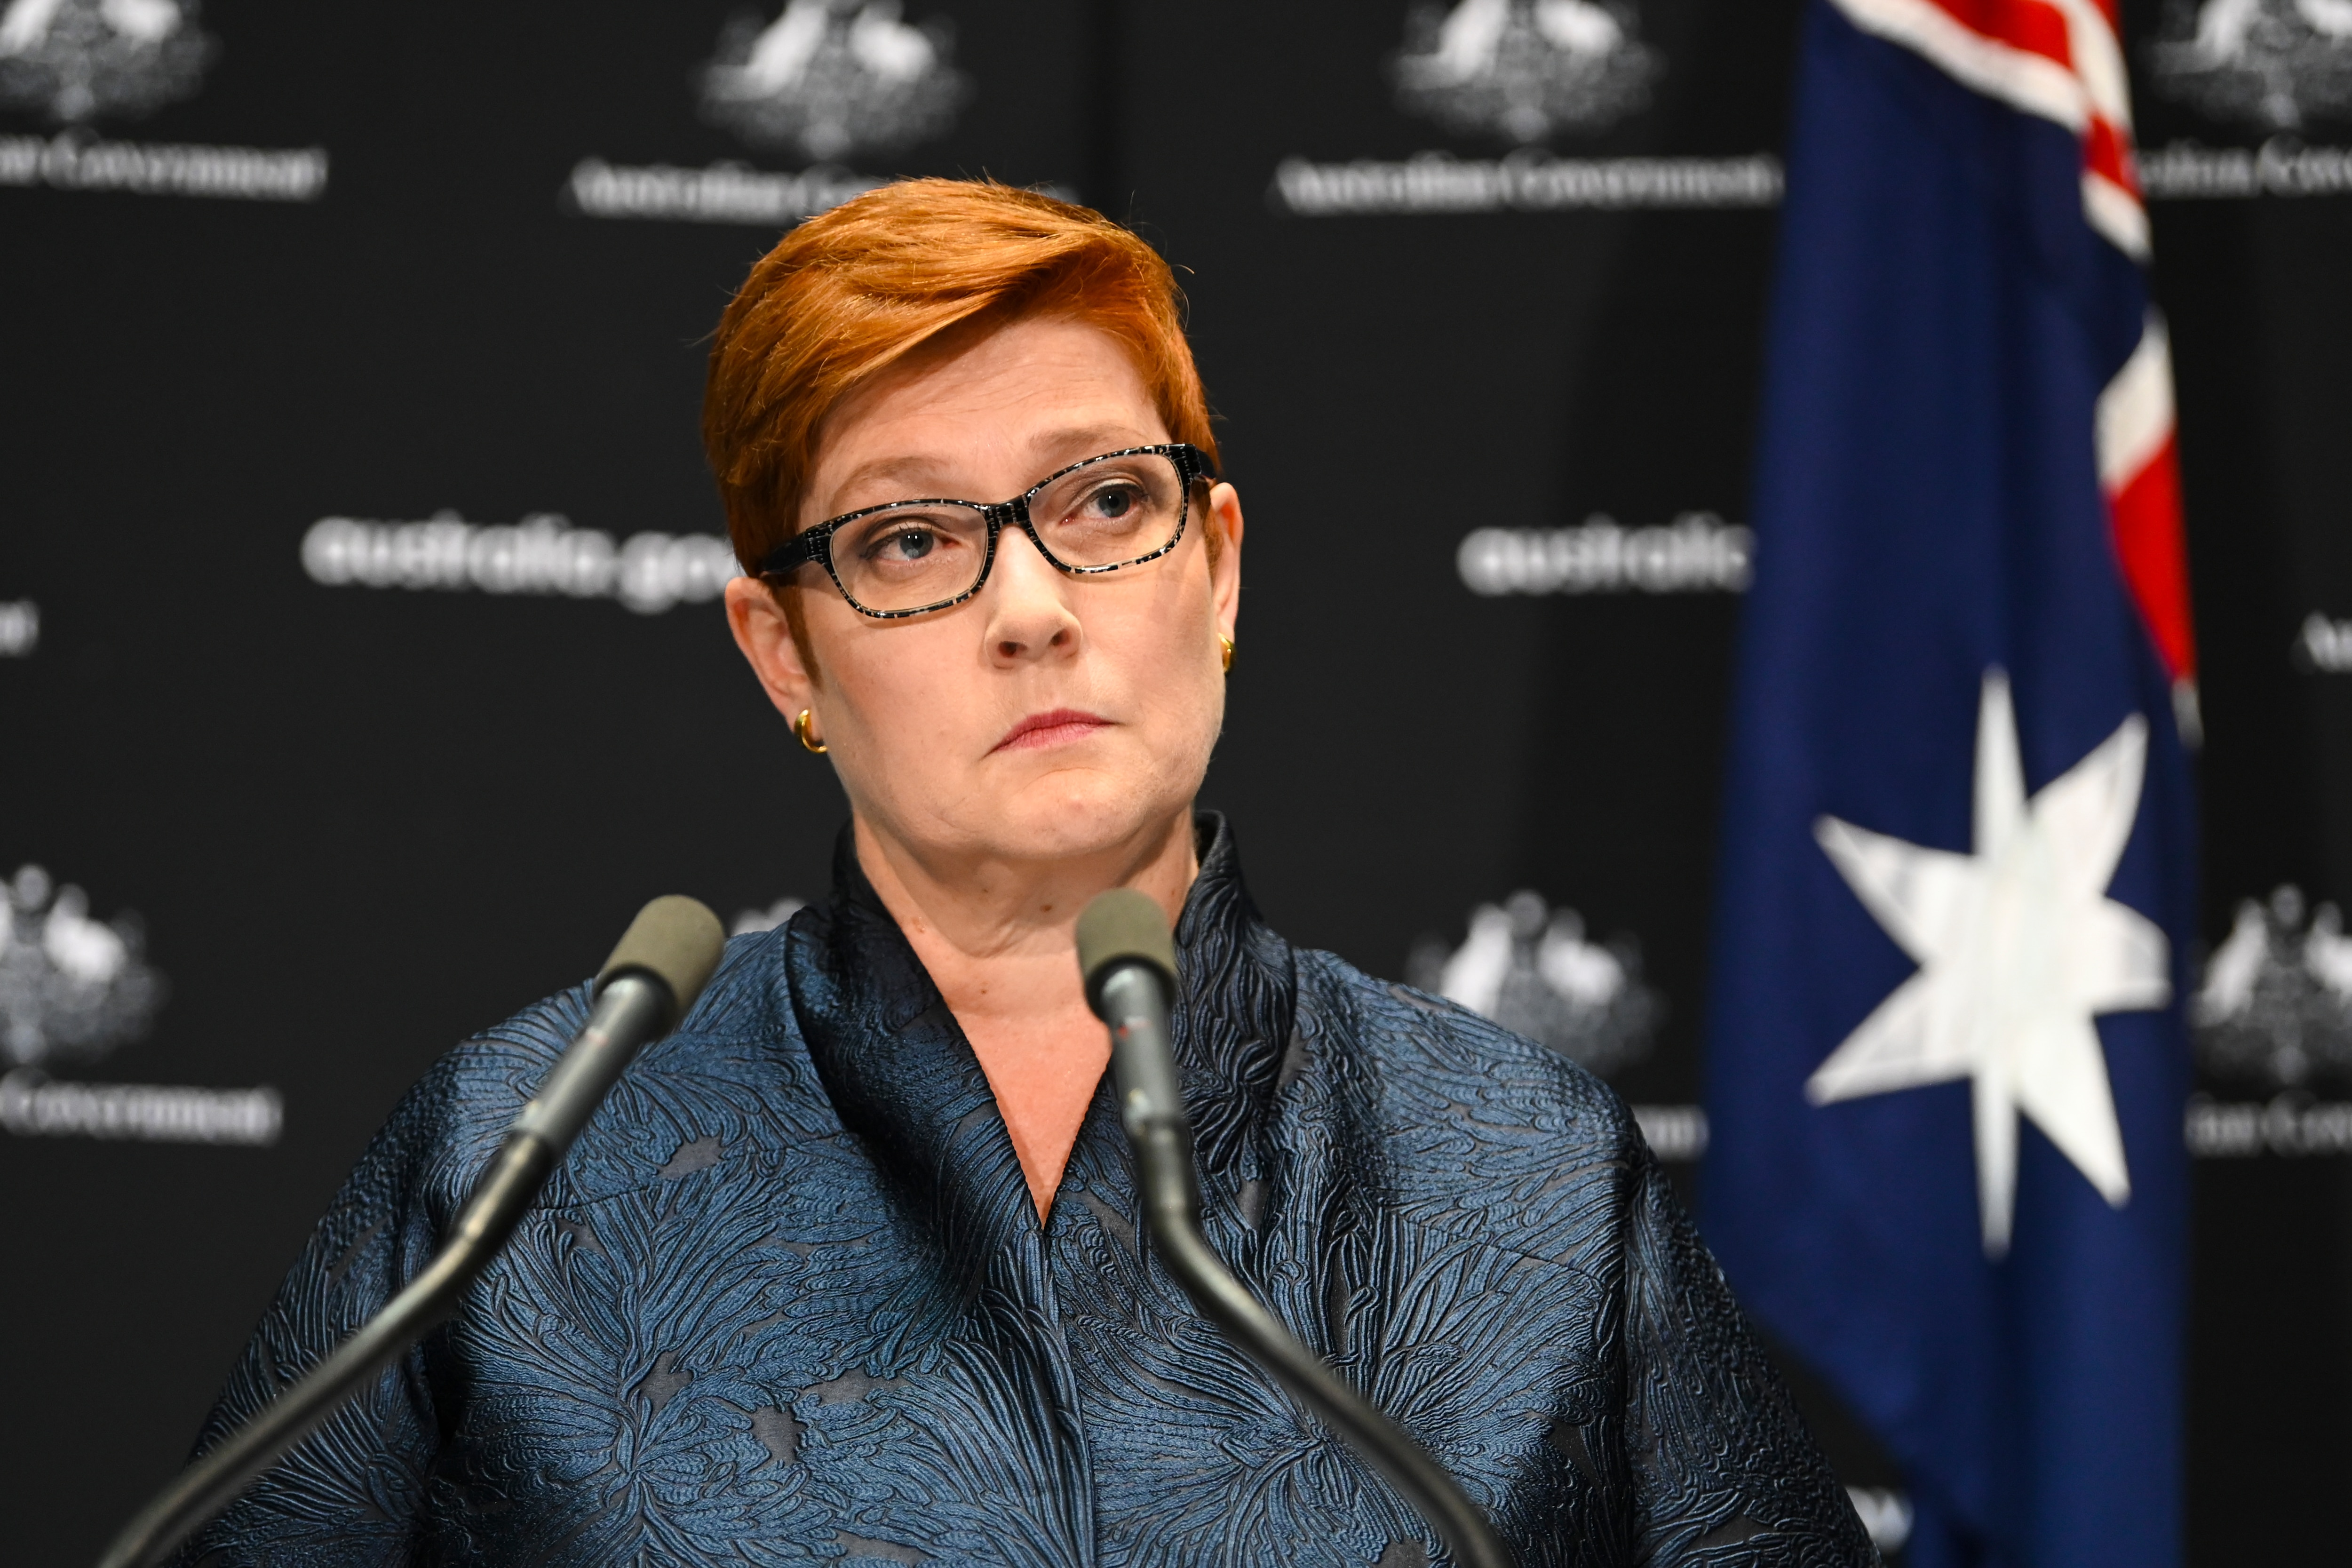 Foreign Minister Marise Payne said Australia is deepening ties with Pacific neighbours.